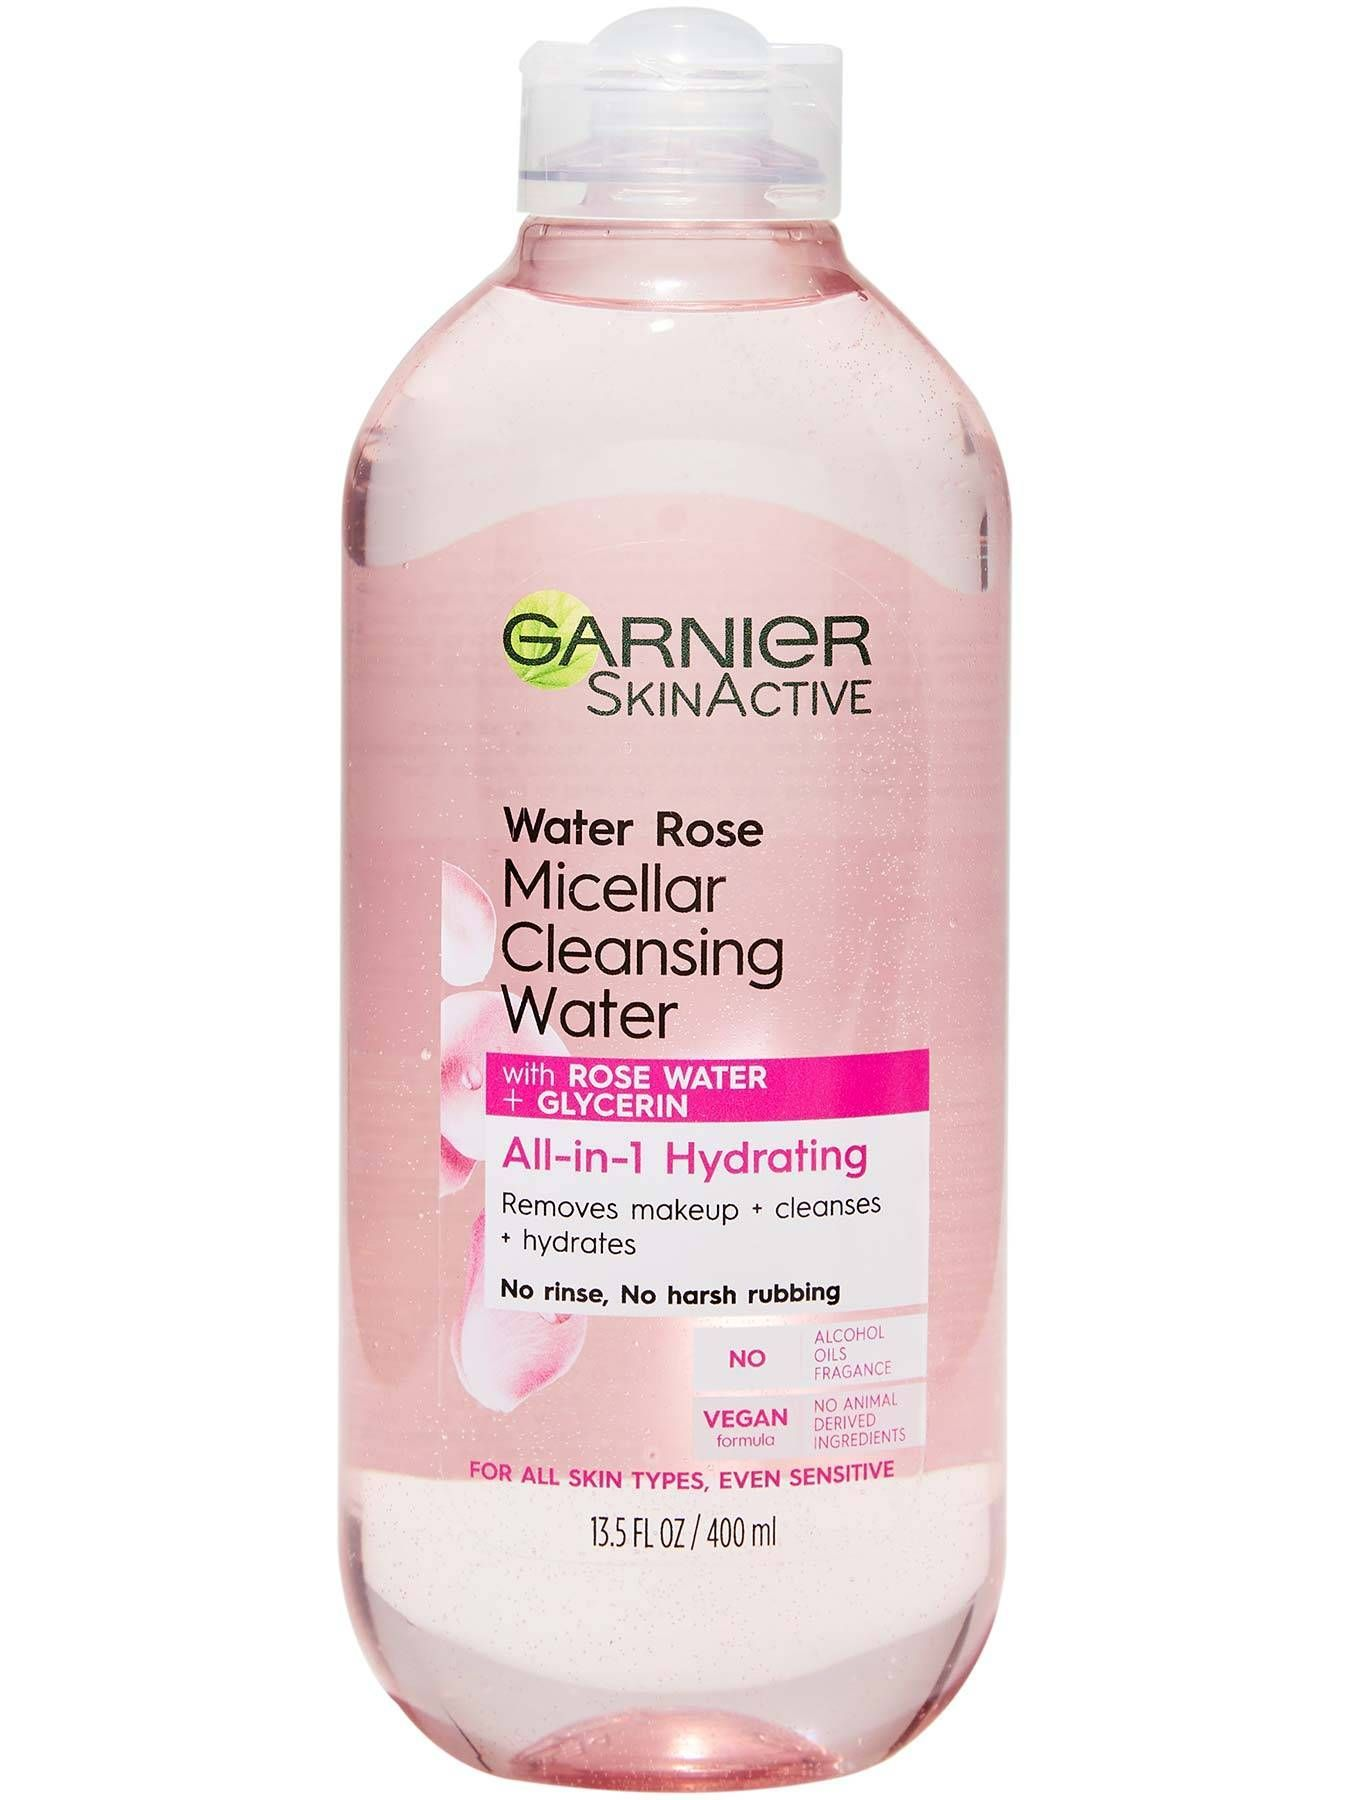 Water Rose Micellar Cleansing Water Cleanser Makeup Remover All In 1 By Garnier Skinactive With M In 2020 Micellar Cleansing Water Garnier Skin Active Water Cleanse